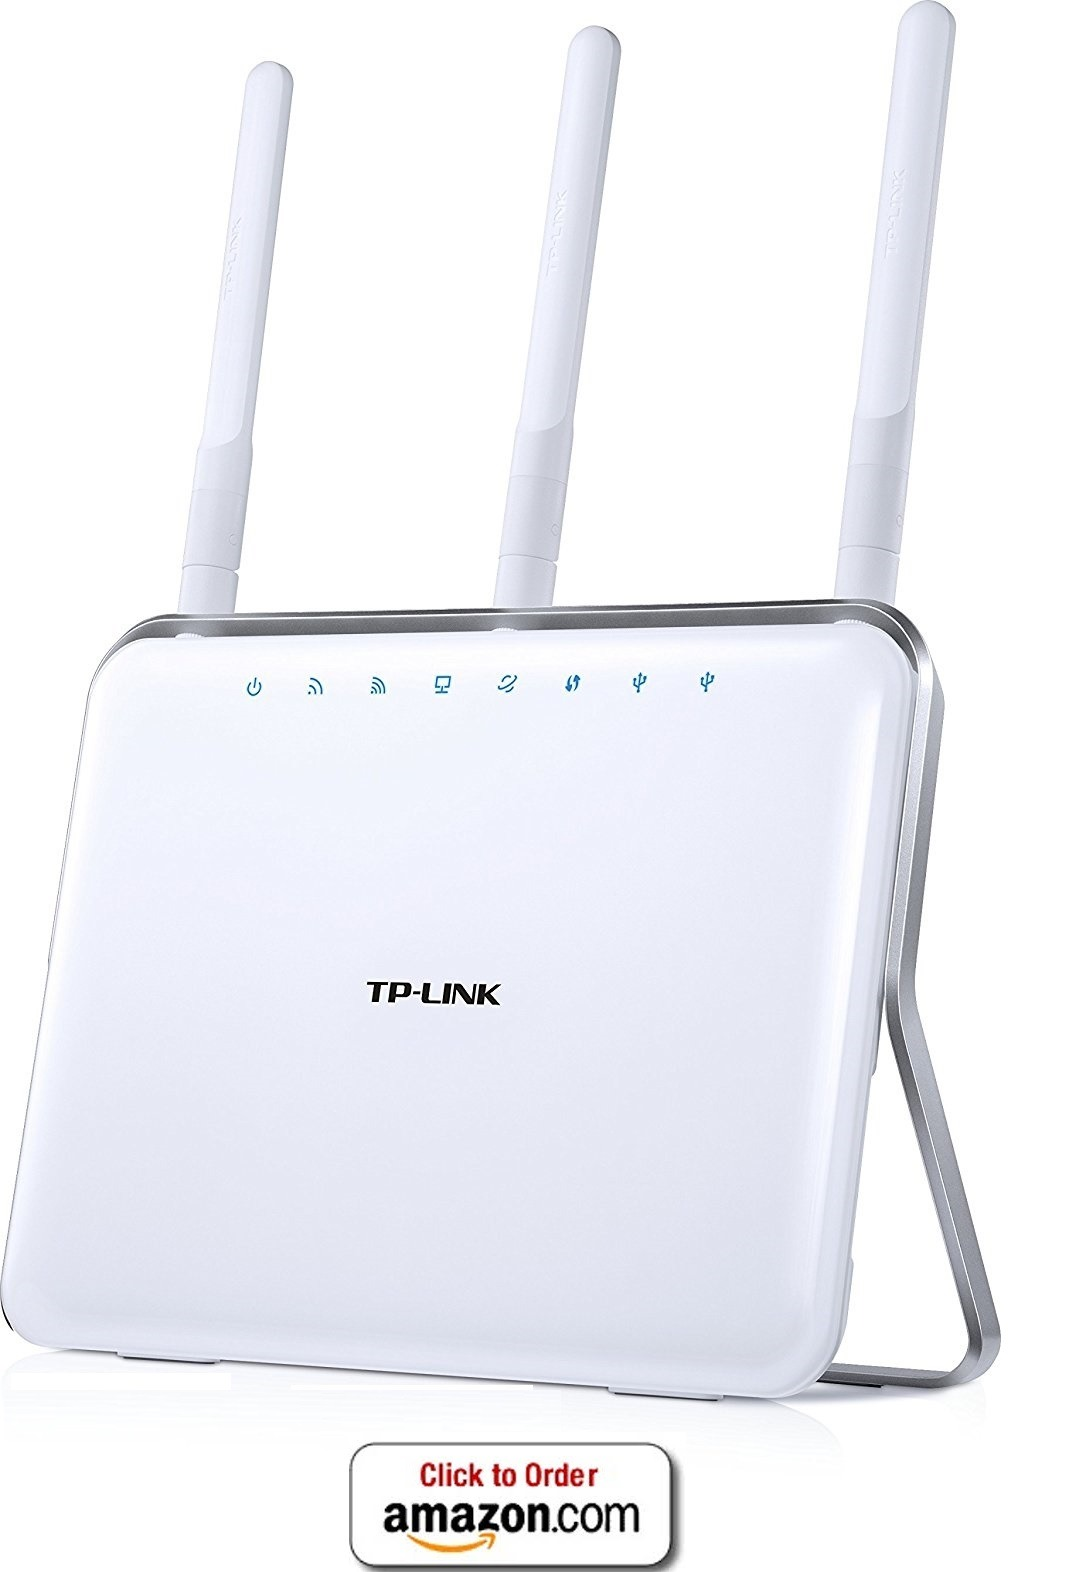 tp link wifi router dual band under $100.jpg